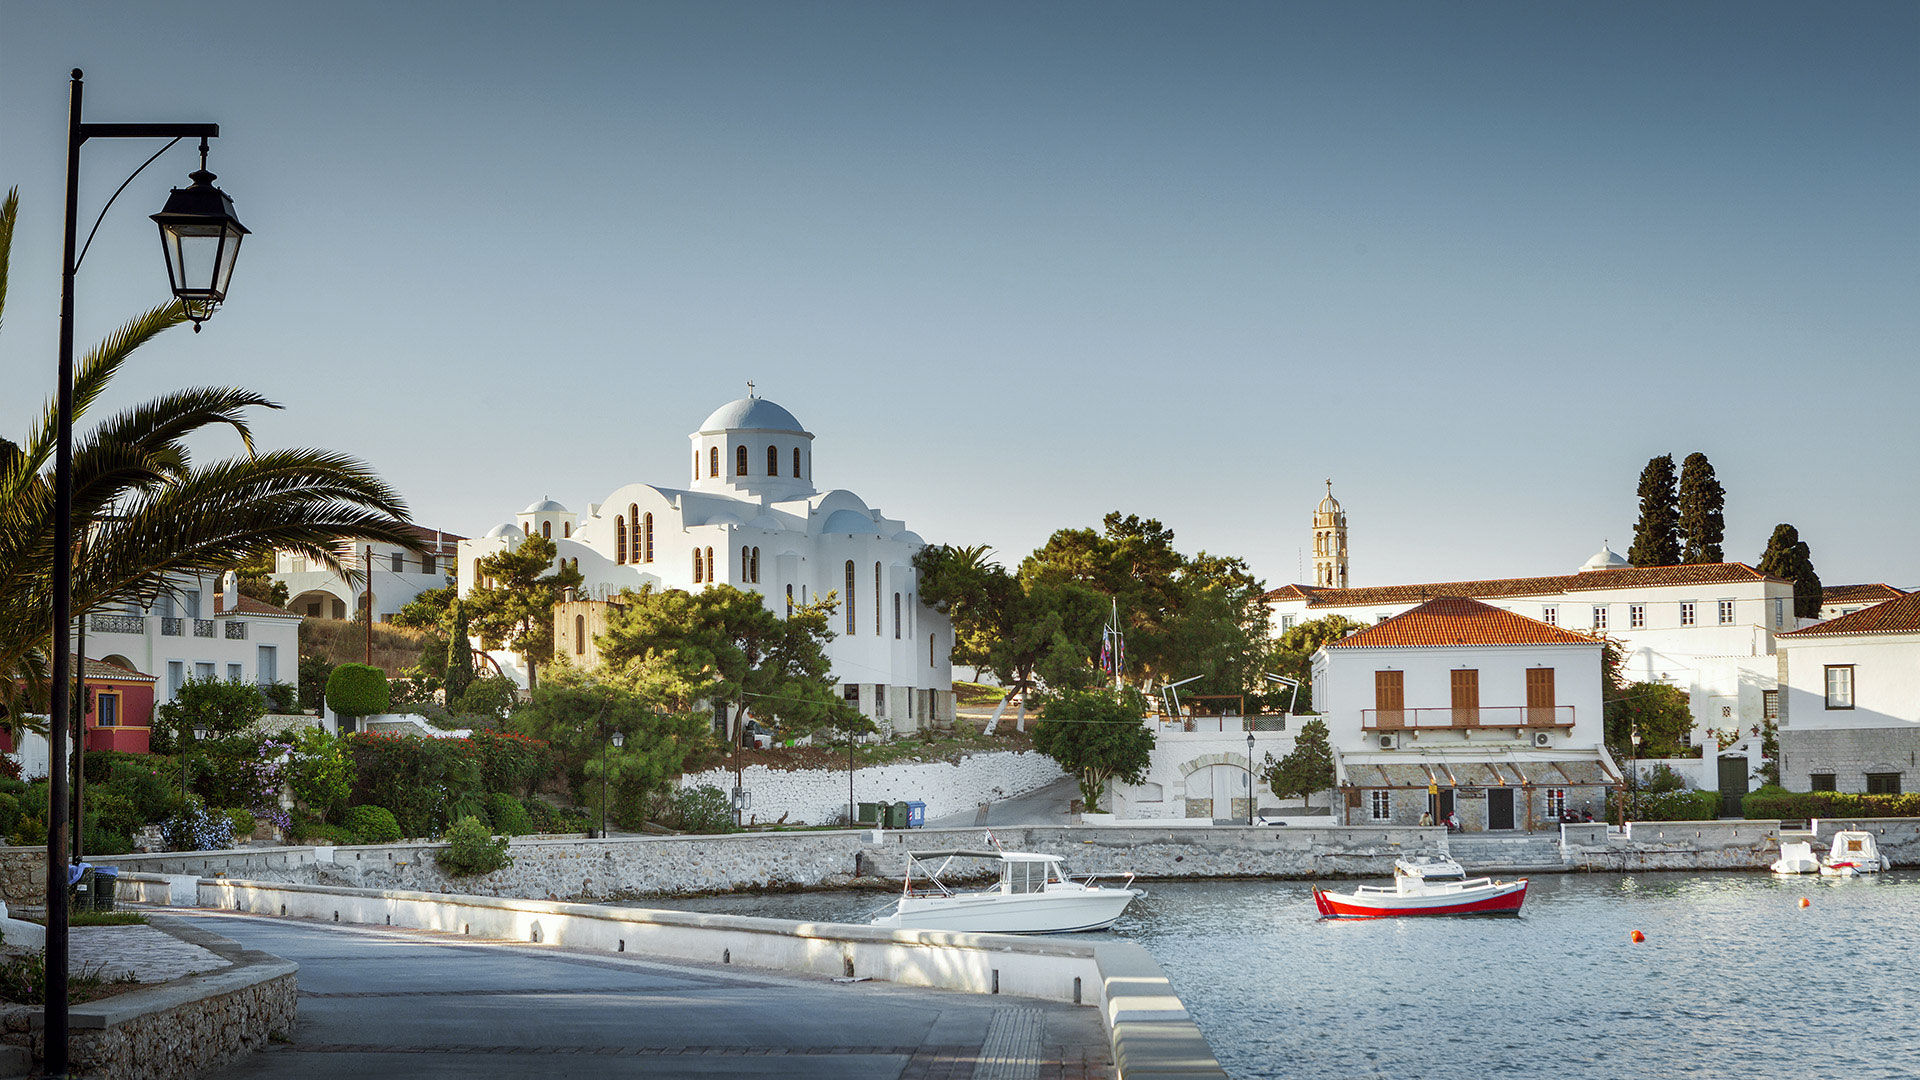 Church in the port of Spetses island